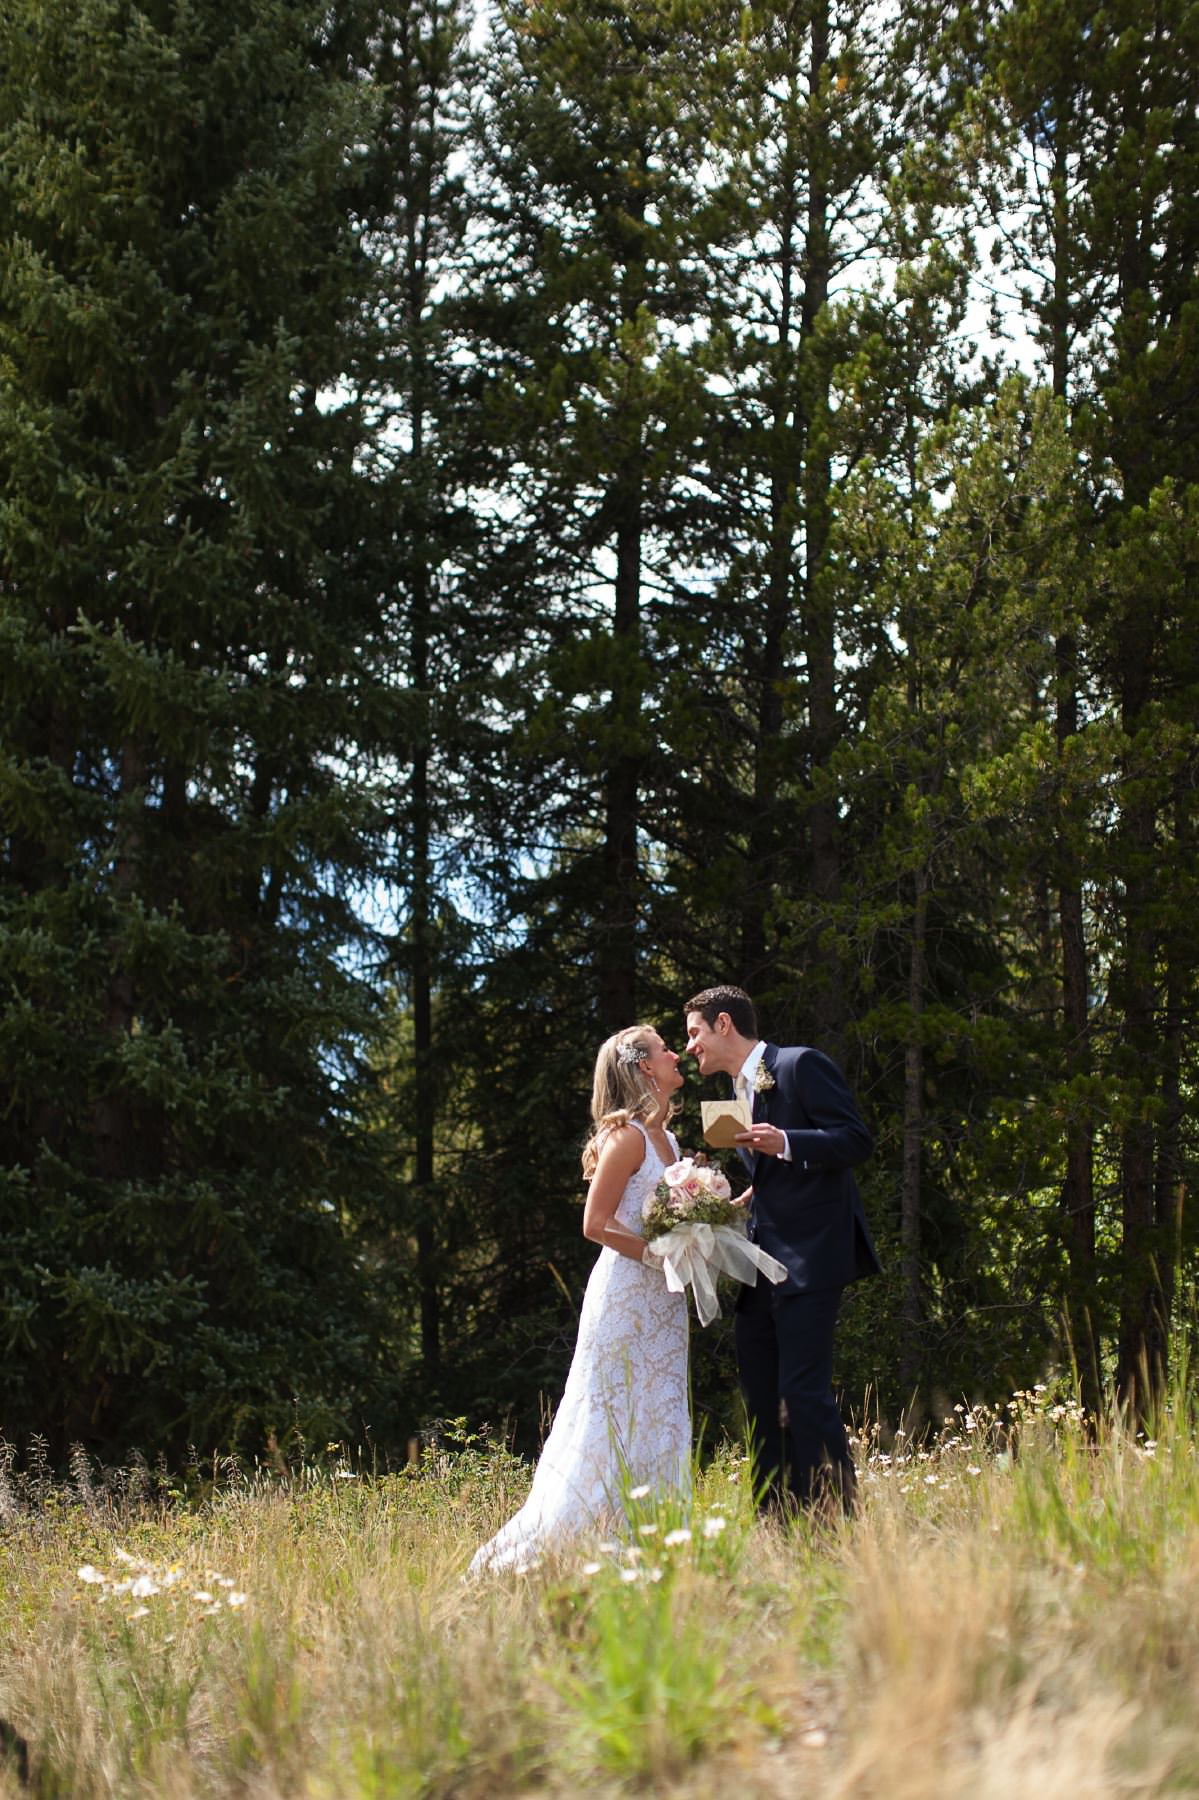 Bride and groom kiss in a field surrounded by pine trees.